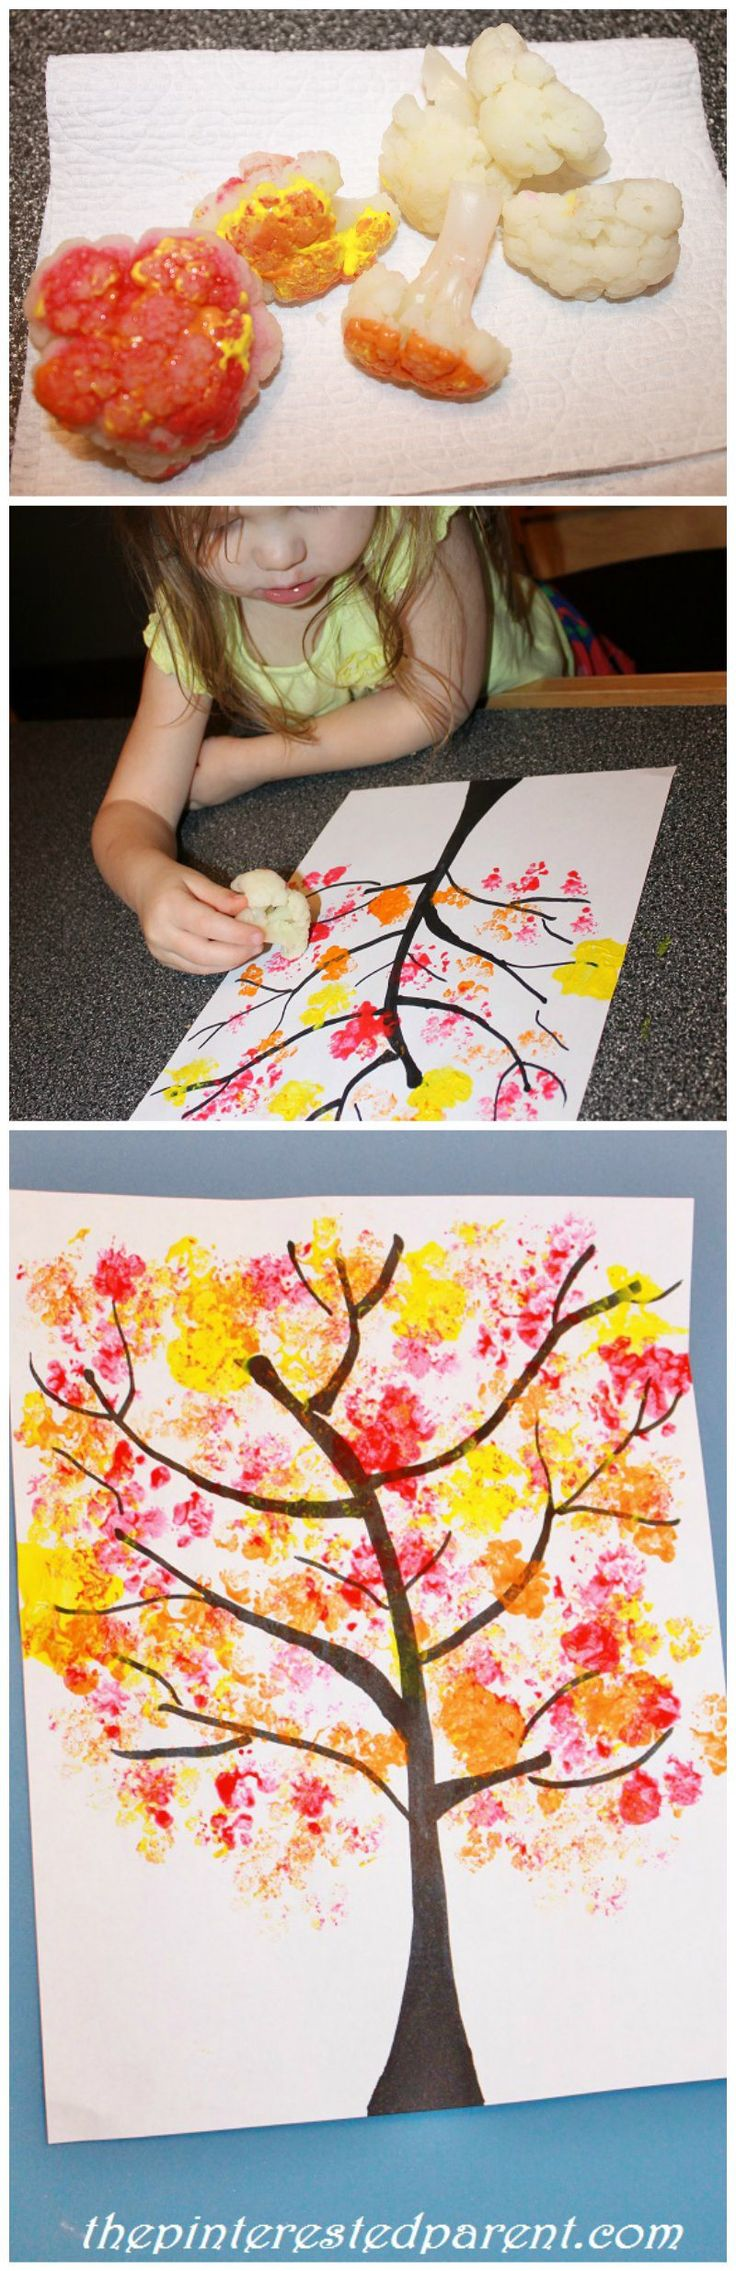 Cauliflower-Stamped-Fall-Tree-Craft